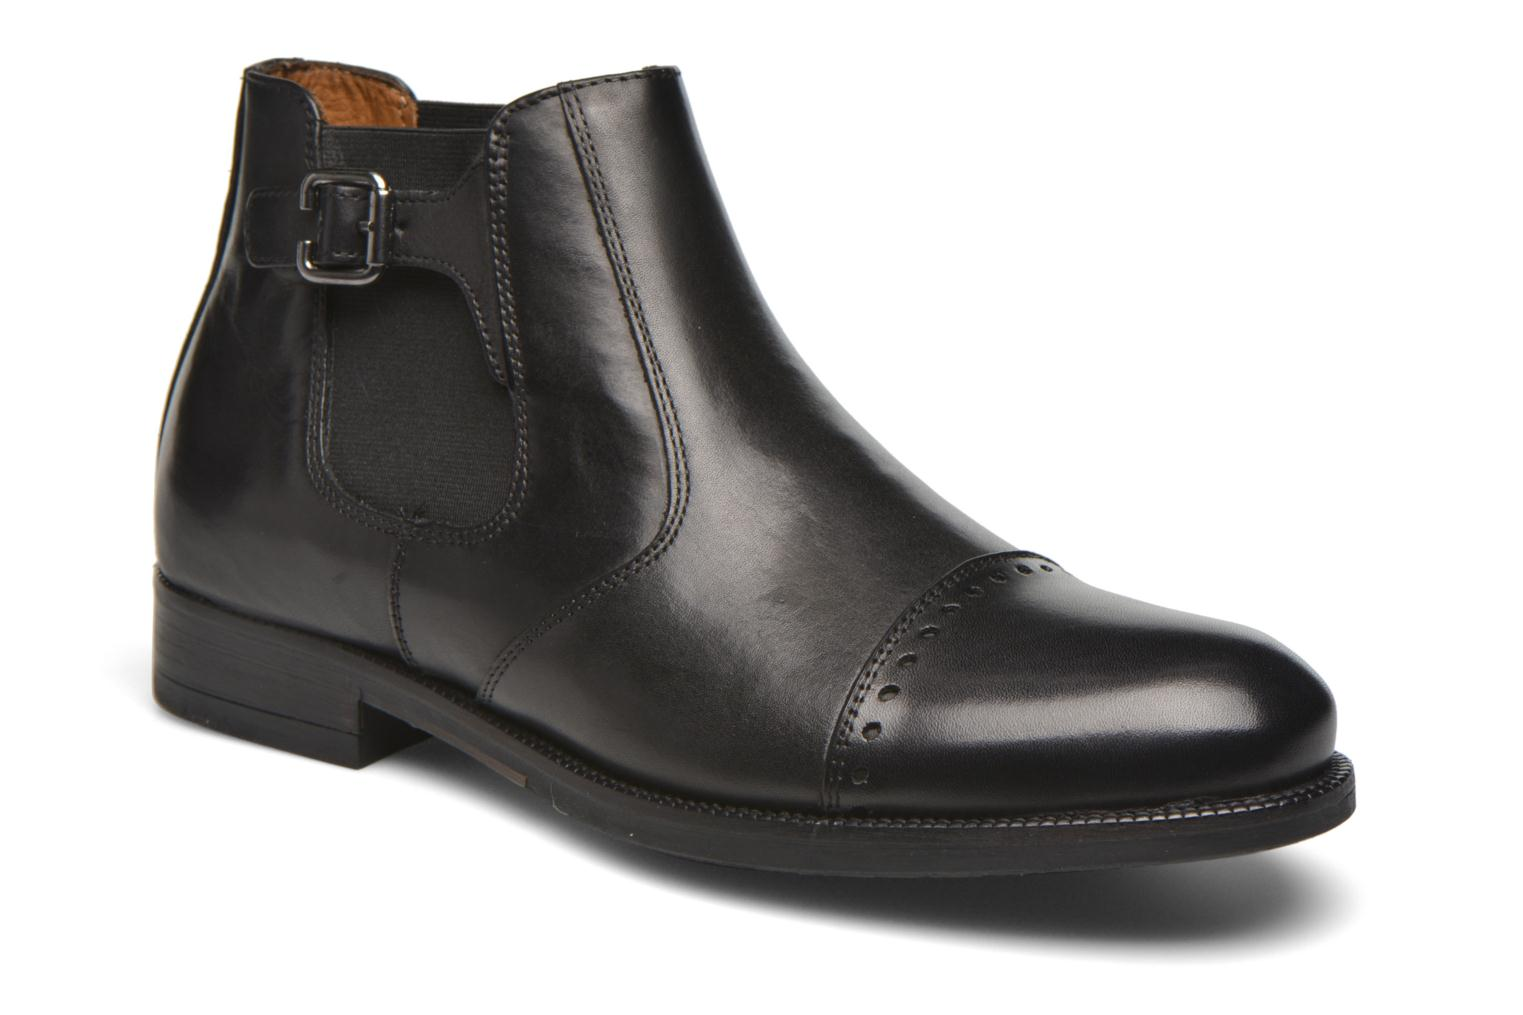 Marques Chaussure homme Marvin&Co homme Nuneaton River Nero